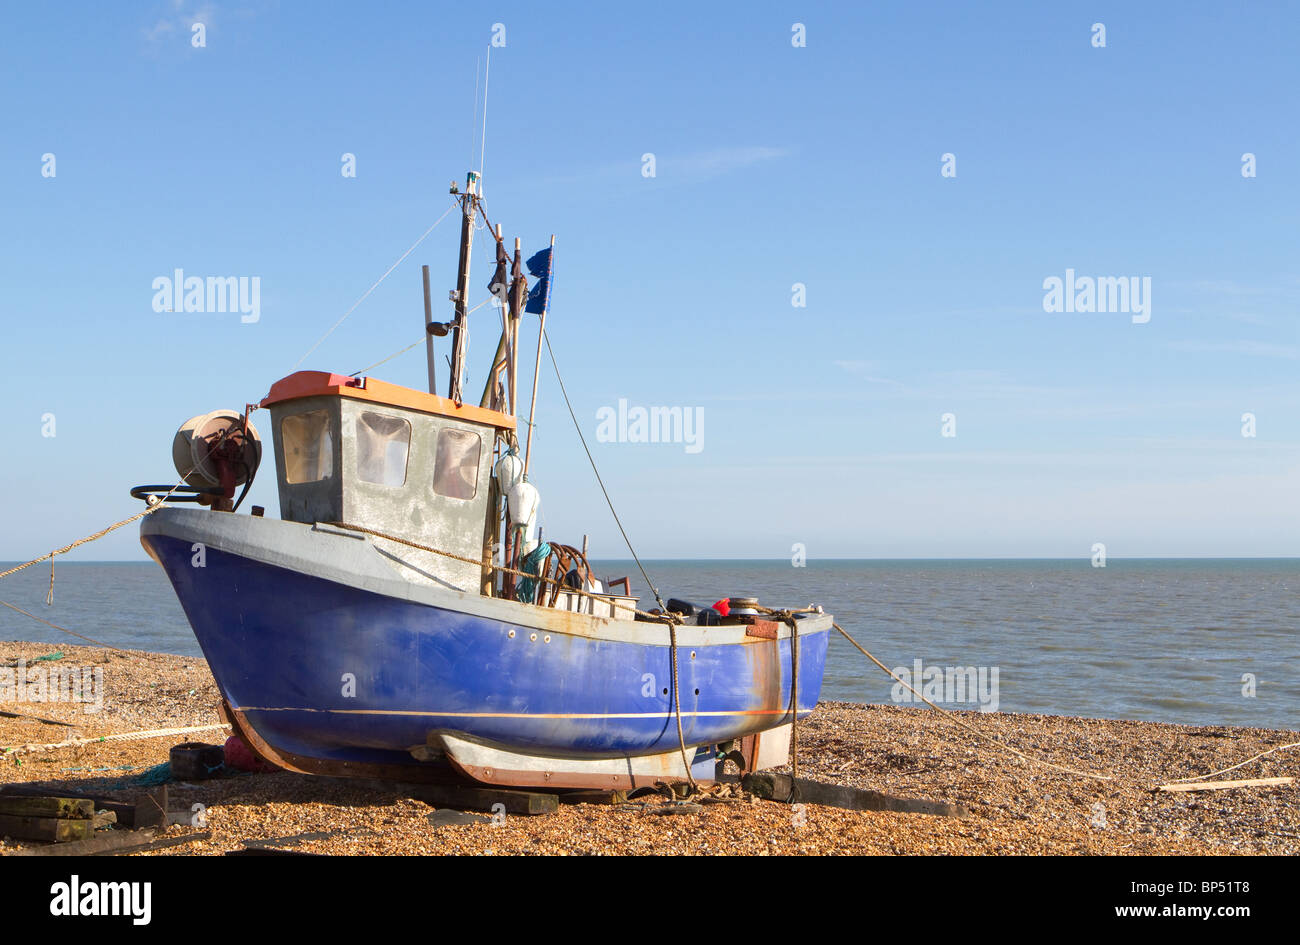 Traditional small fishing boat that has been pulled up onto the beach at Hythe, near Folkestone, Kent, UK. - Stock Image